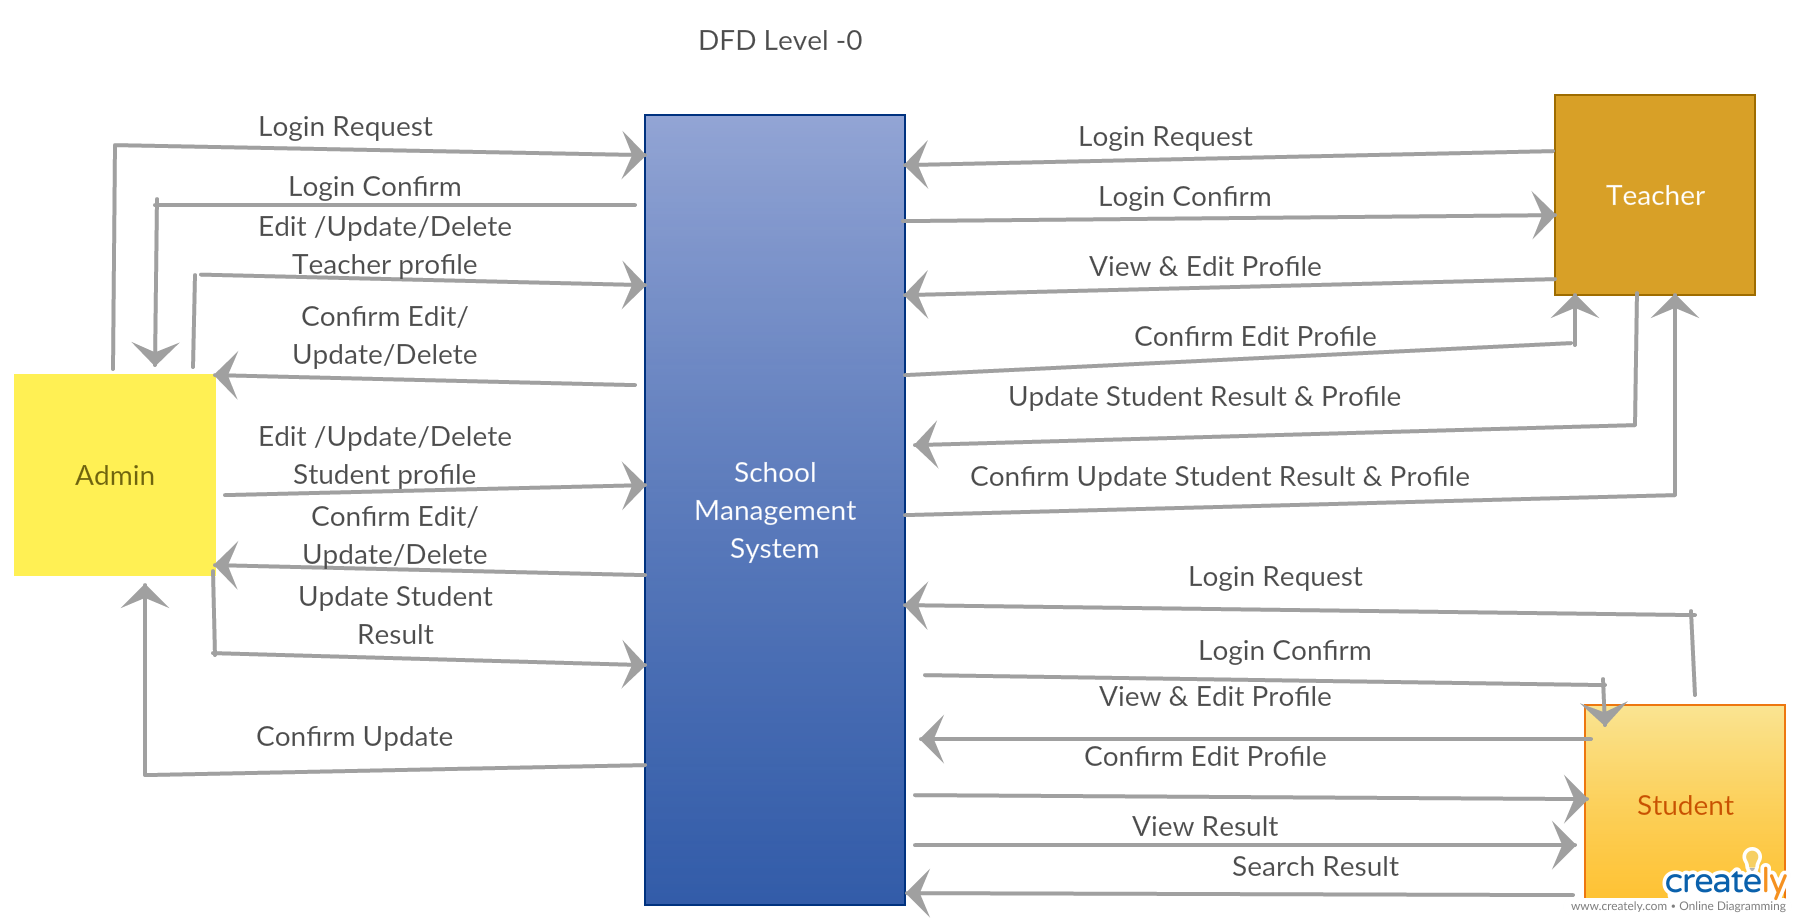 medium resolution of dfd level 0 of school management system you can edit this template and create your own diagram creately diagrams can be exported and added to word